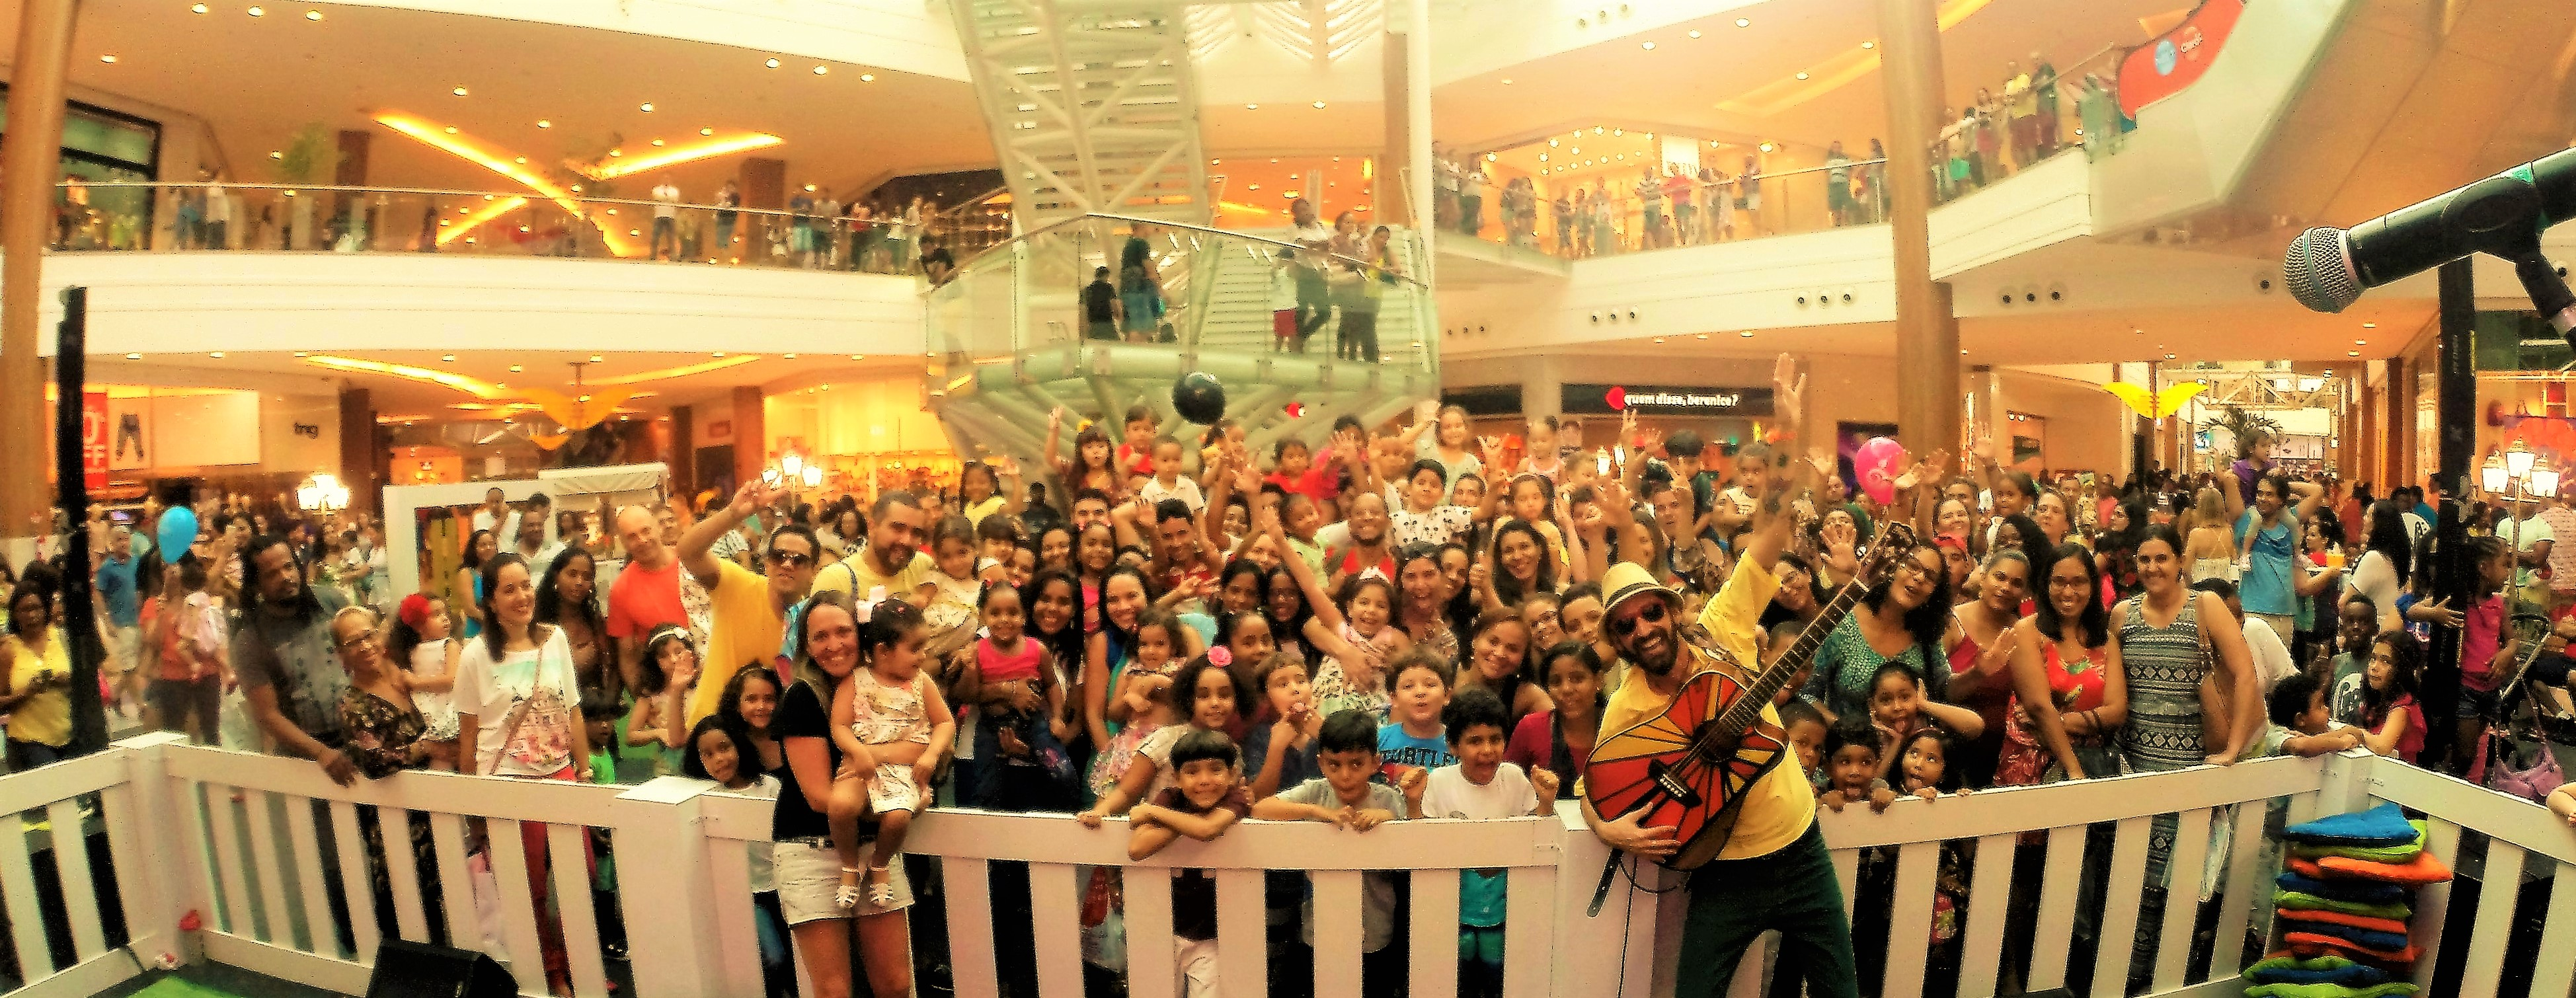 Salvador Shopping/BA